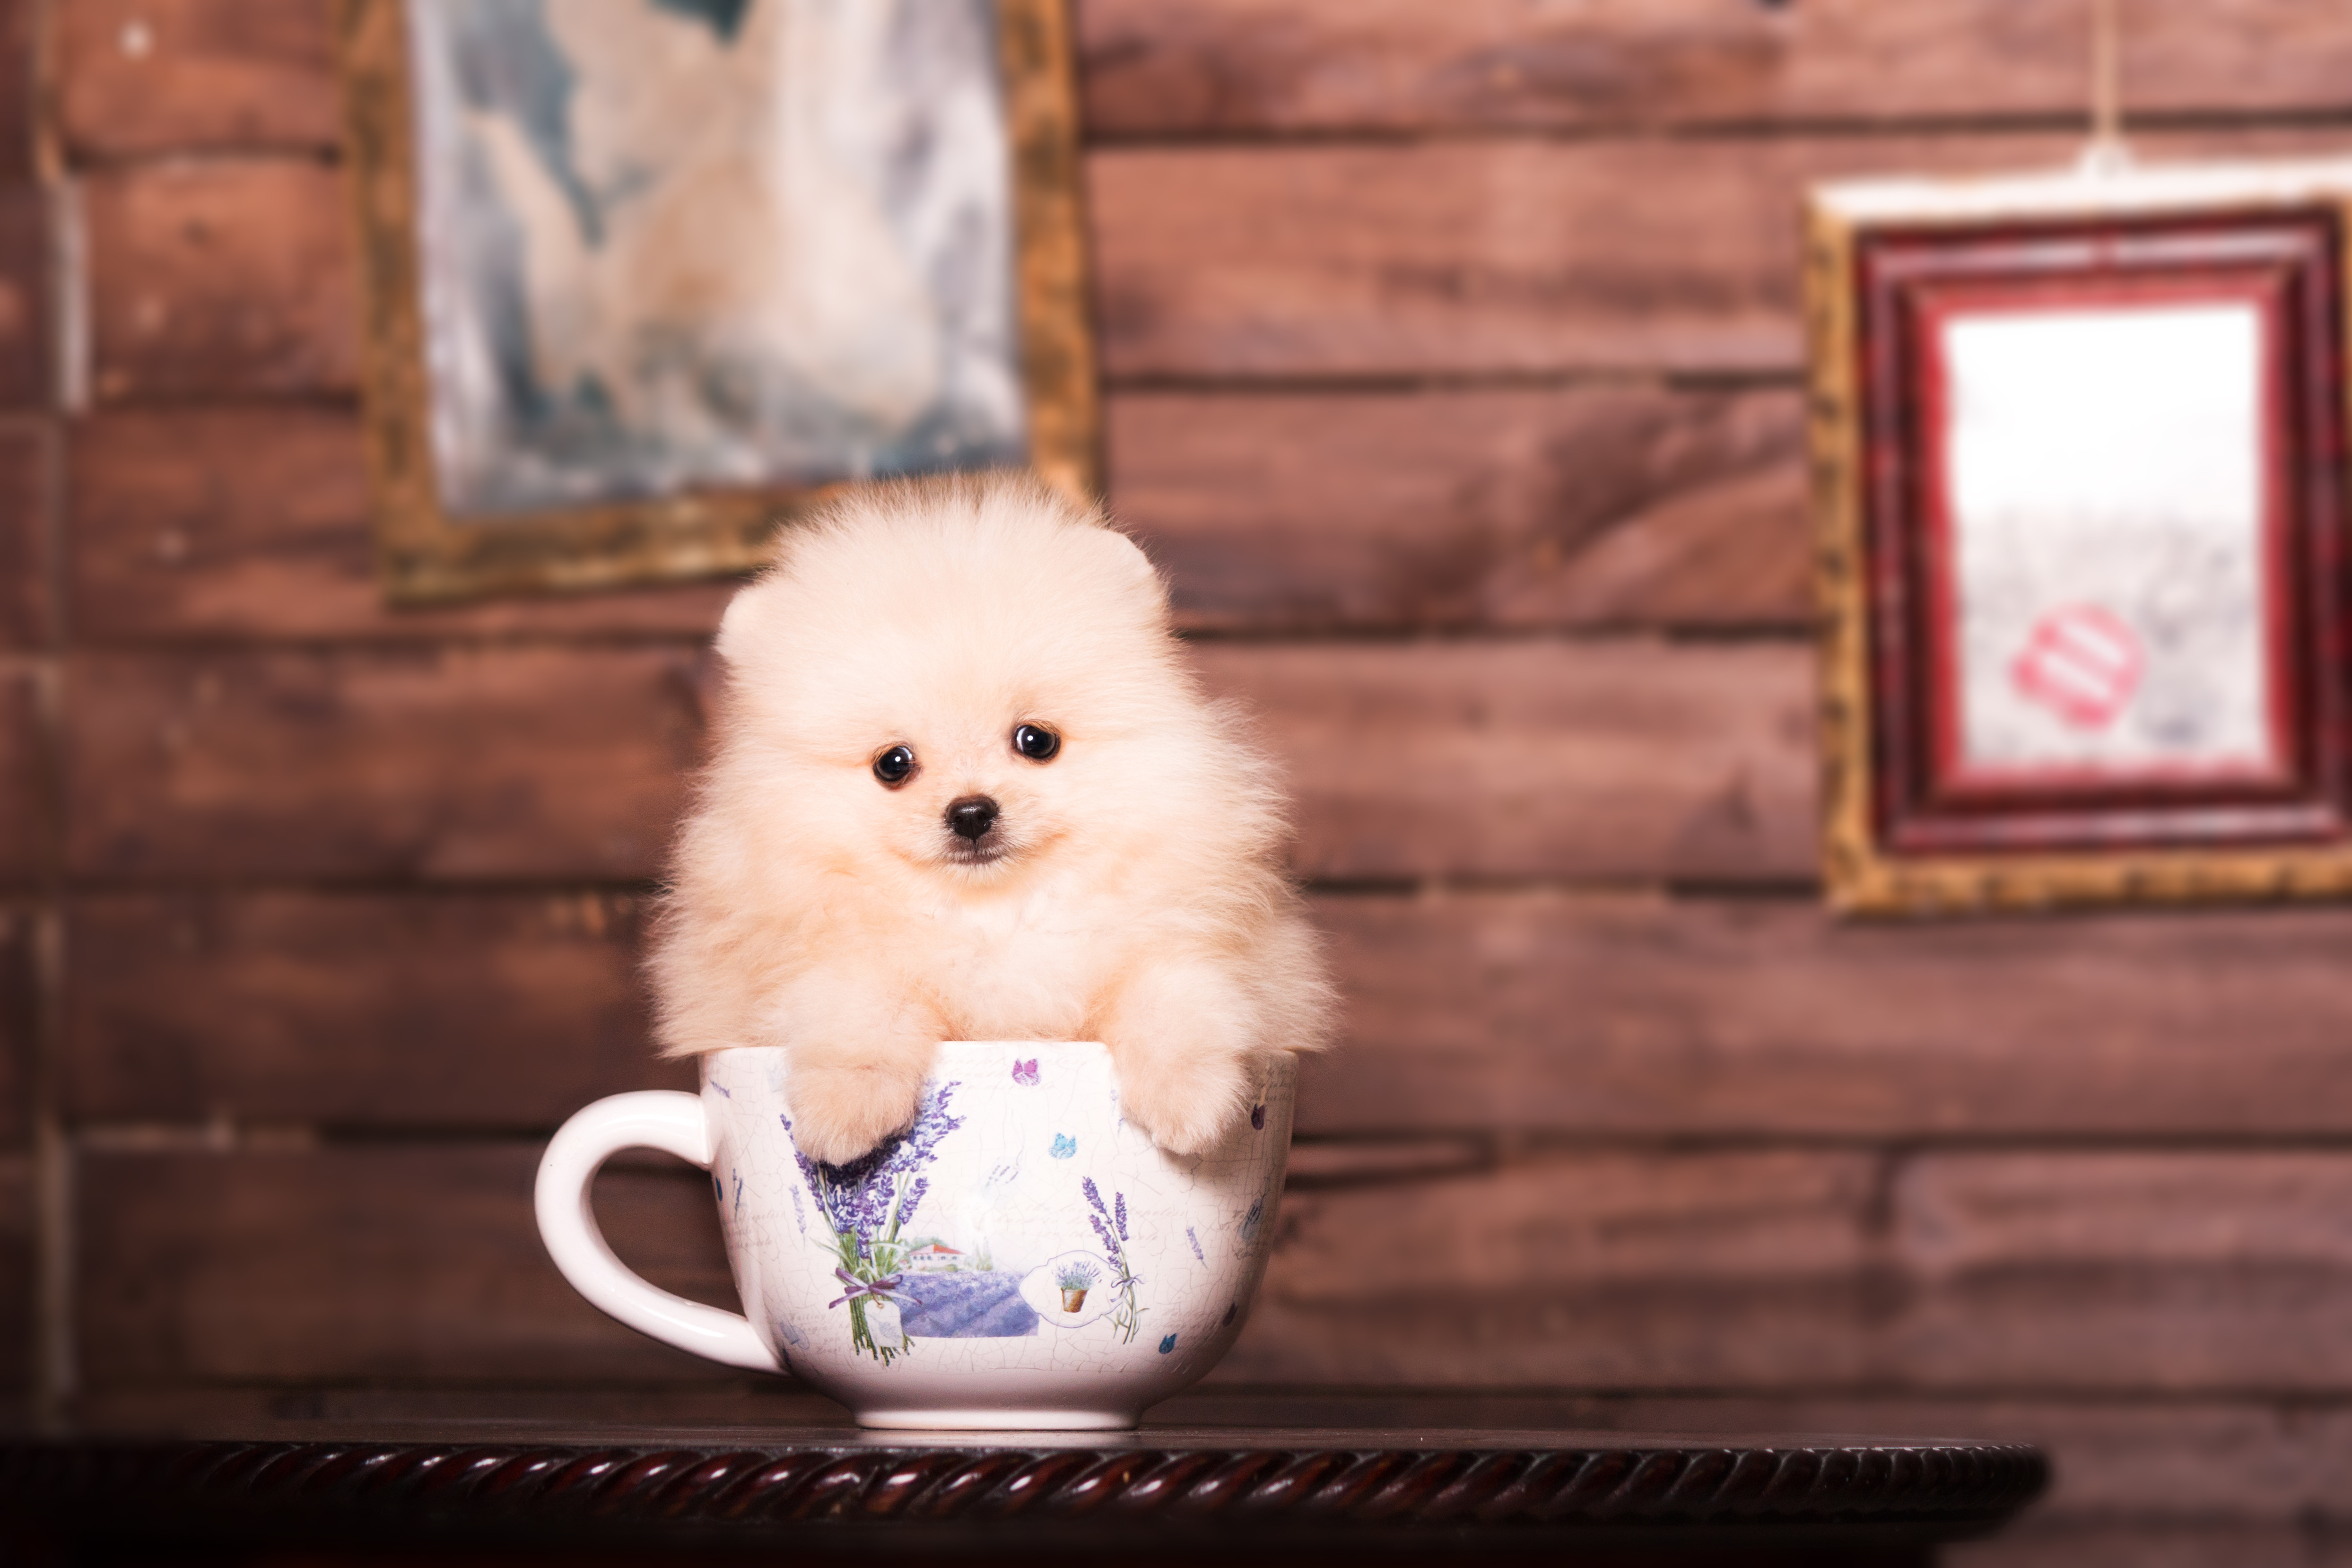 SF Might Get Its Very Own Puppy Café